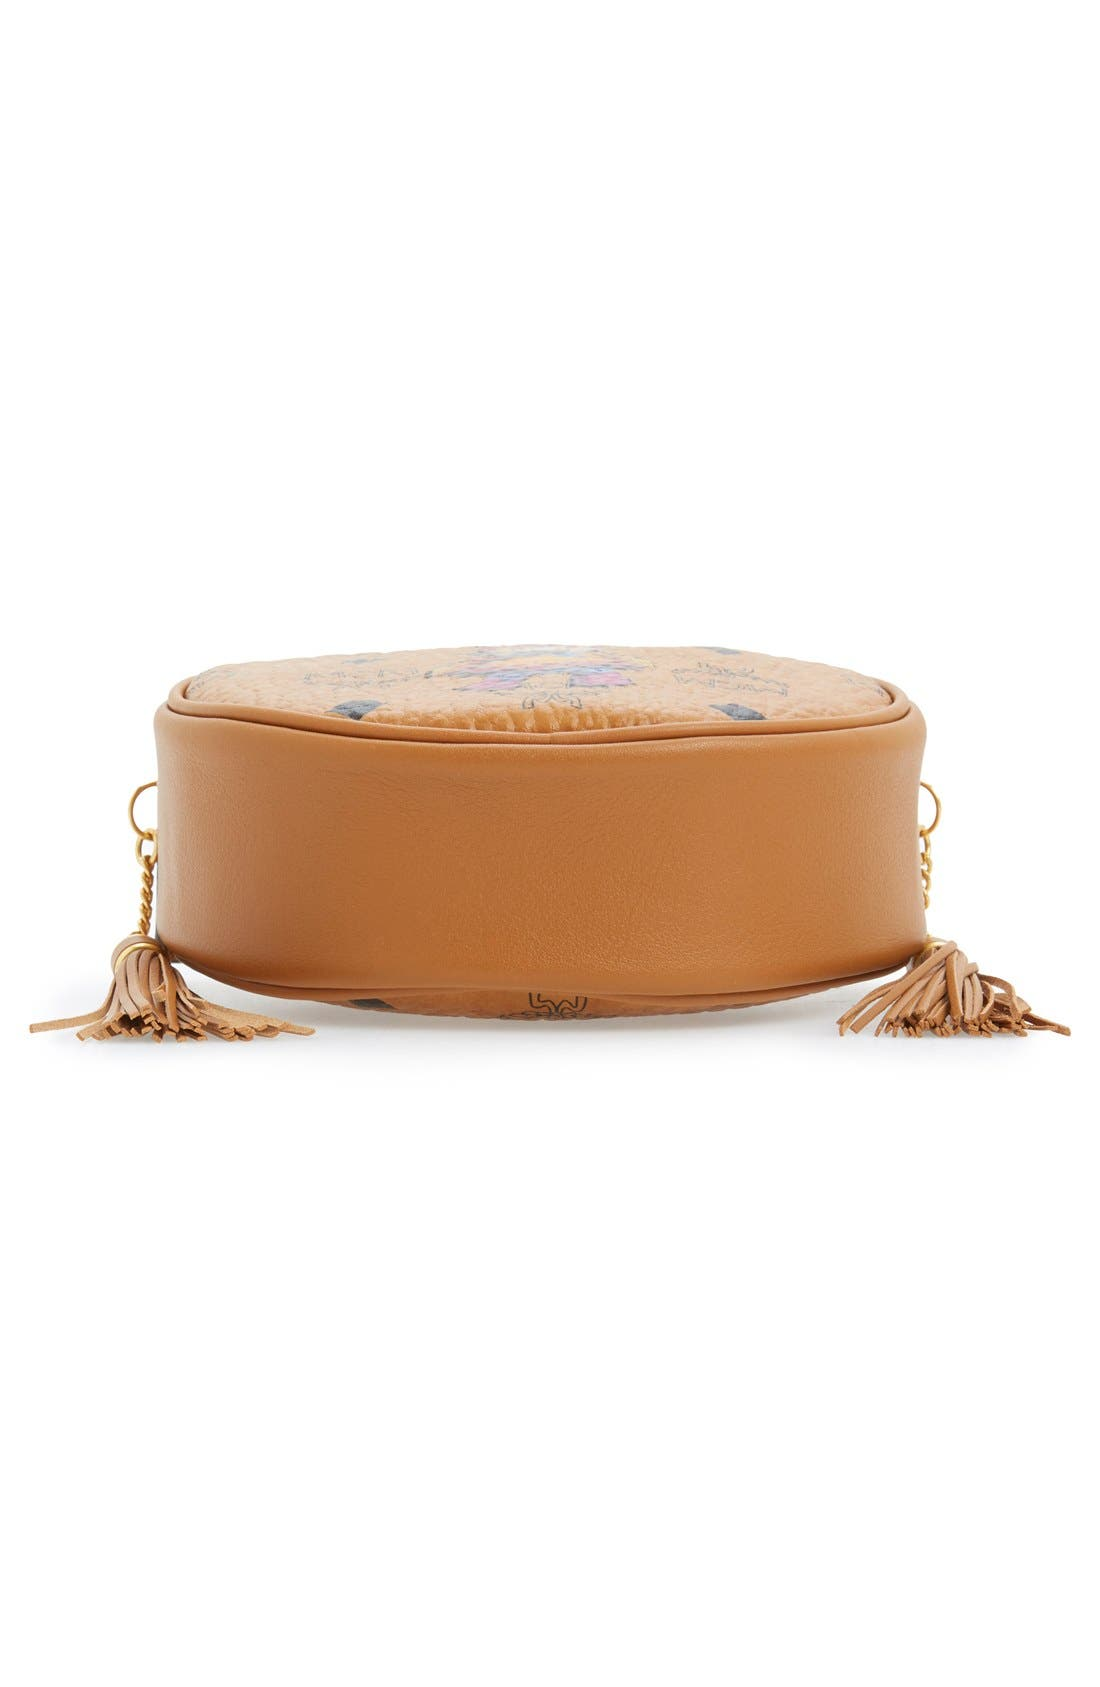 'Rabbit Tambourine Small' Round Crossbody Bag,                             Alternate thumbnail 2, color,                             200